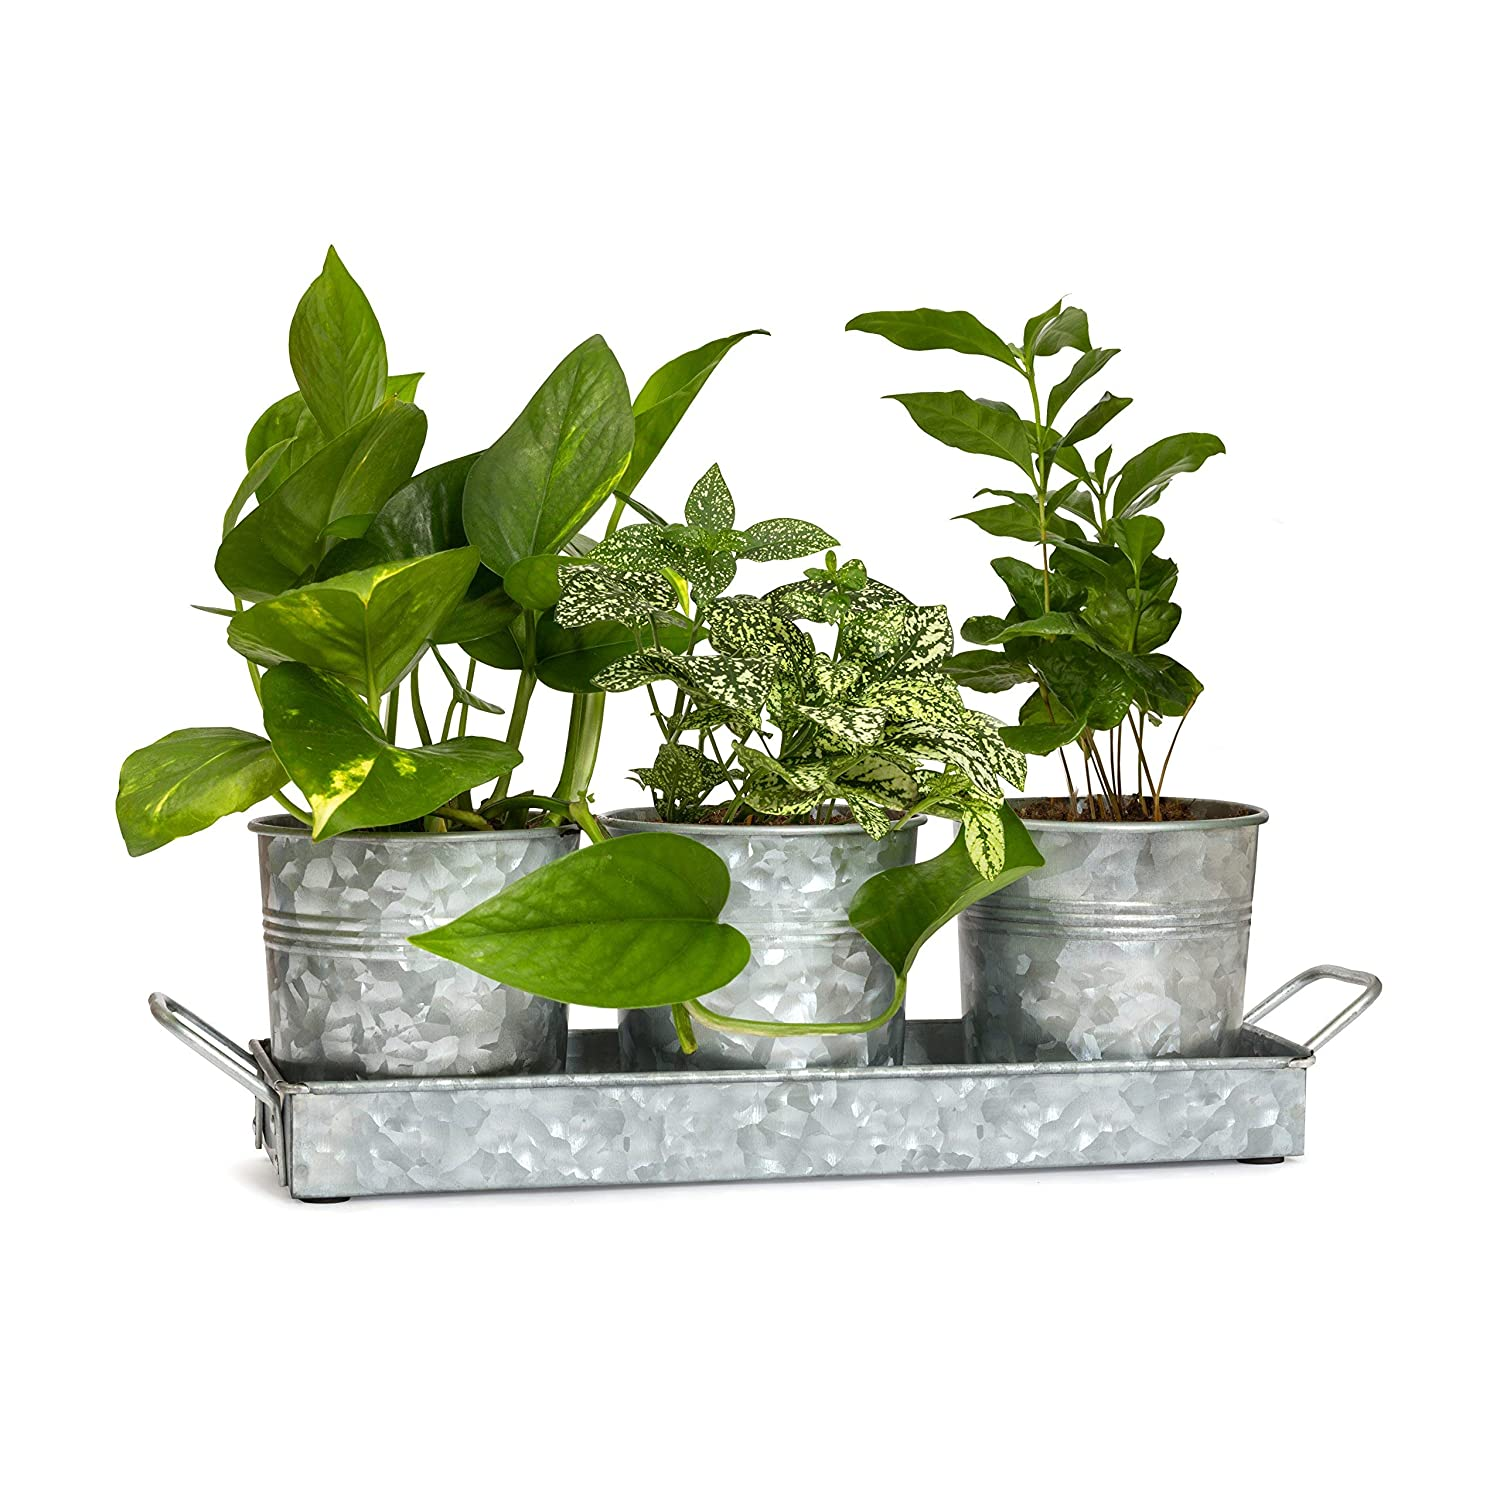 Farmhouse Decor Flower Pot and Tray Set By Walford Home - Vintage Galvanized Windowsill Planter - Rustic Multi-use Caddy Indoor or Outdoor - Kitchen Craft Caddy Succulent Herb Planters